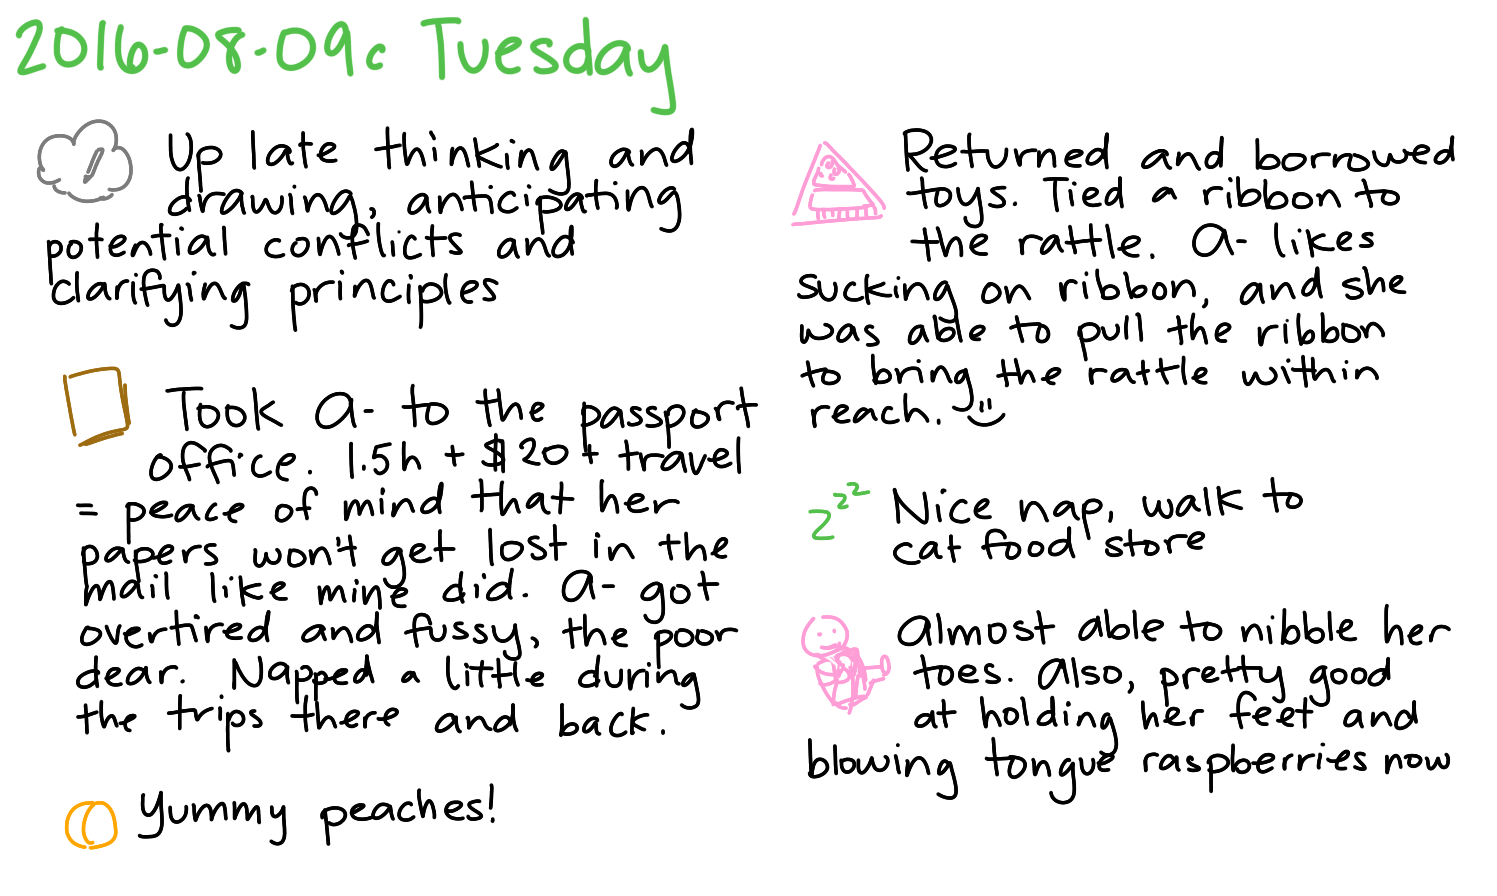 2016-08-09c Tuesday -- index card #journal.png